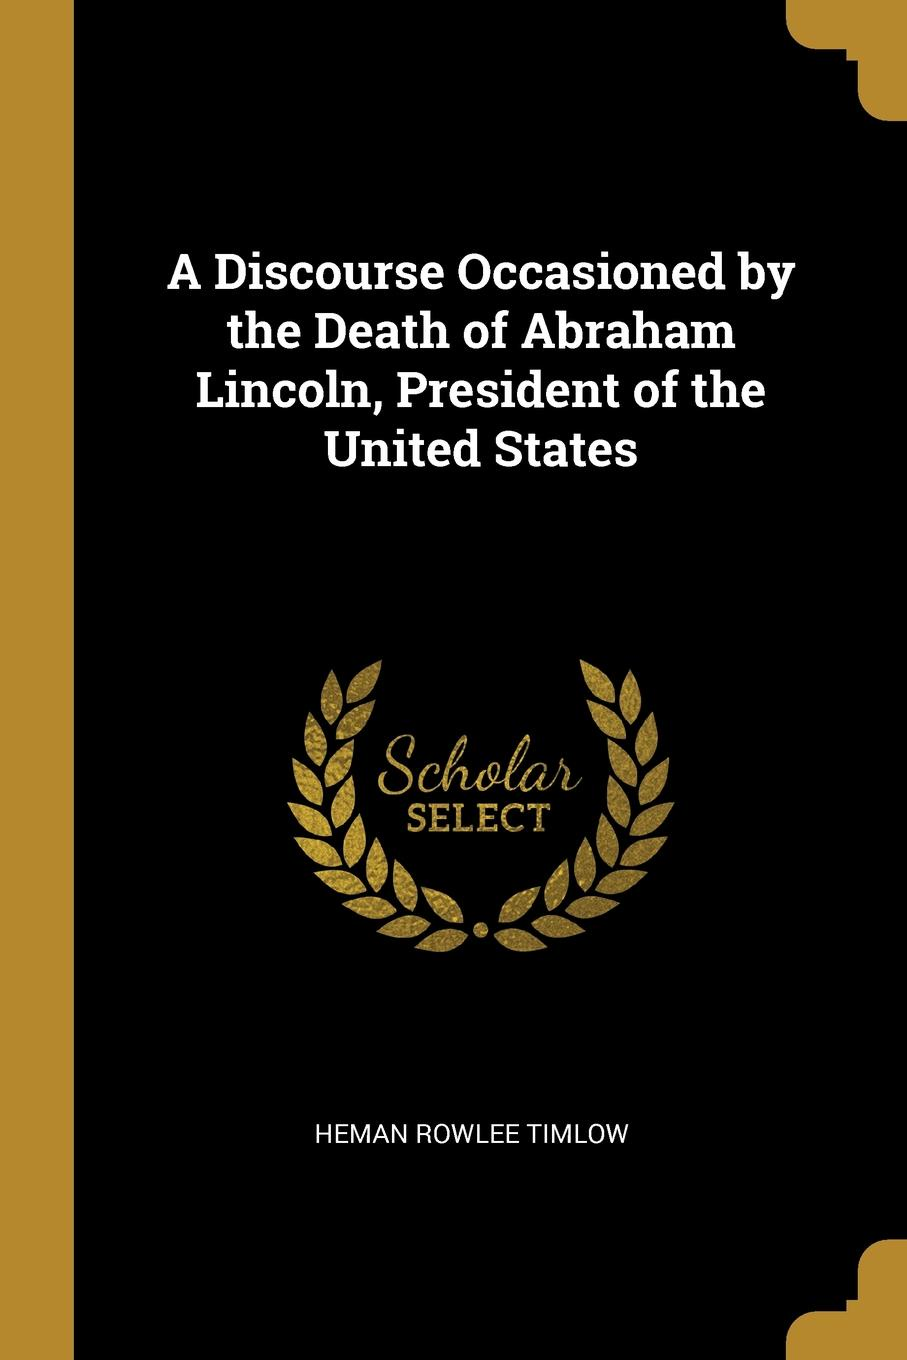 Heman Rowlee Timlow A Discourse Occasioned by the Death of Abraham Lincoln, President of the United States heman r timlow a discourse occasioned by the death of abraham lincoln